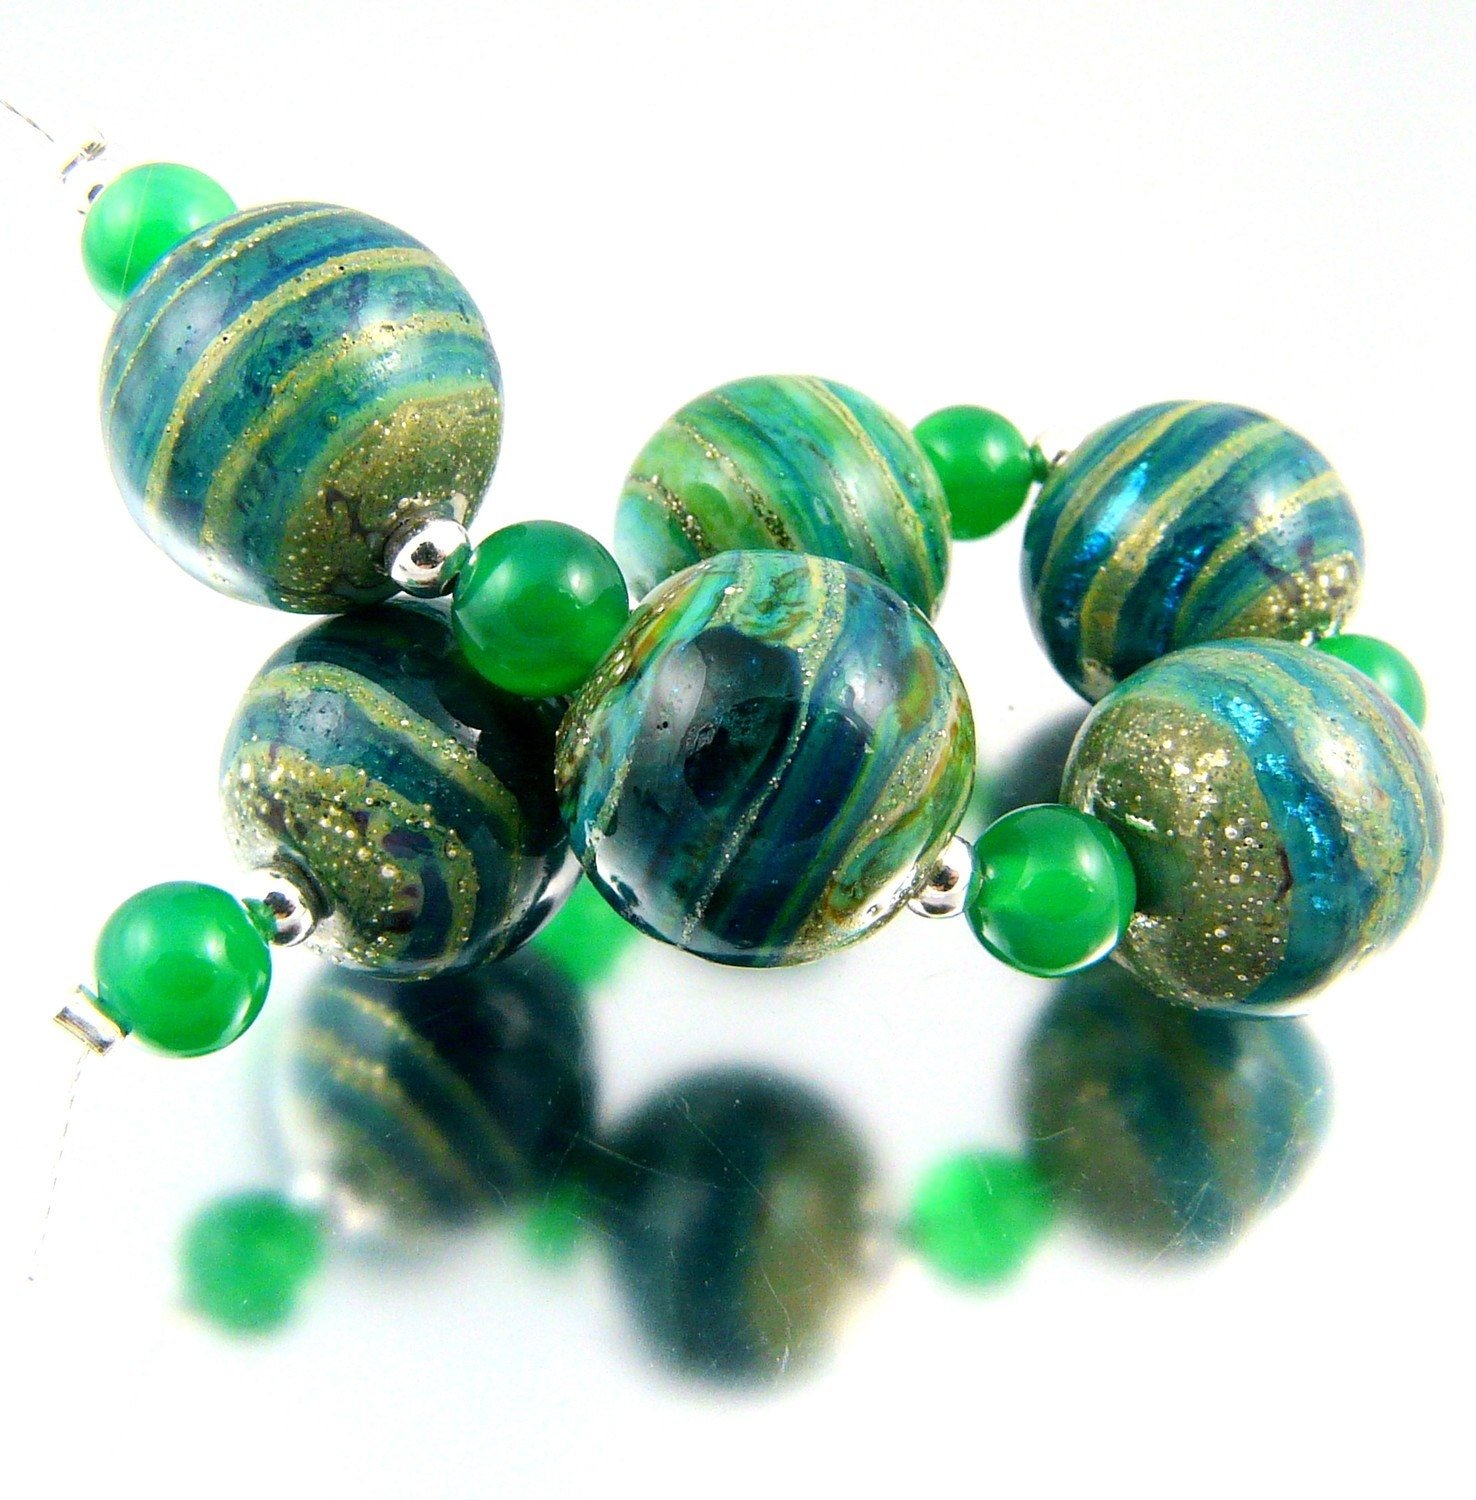 Nigella is a set of 6 handmade lampwork round beads in shades of green and ivory.